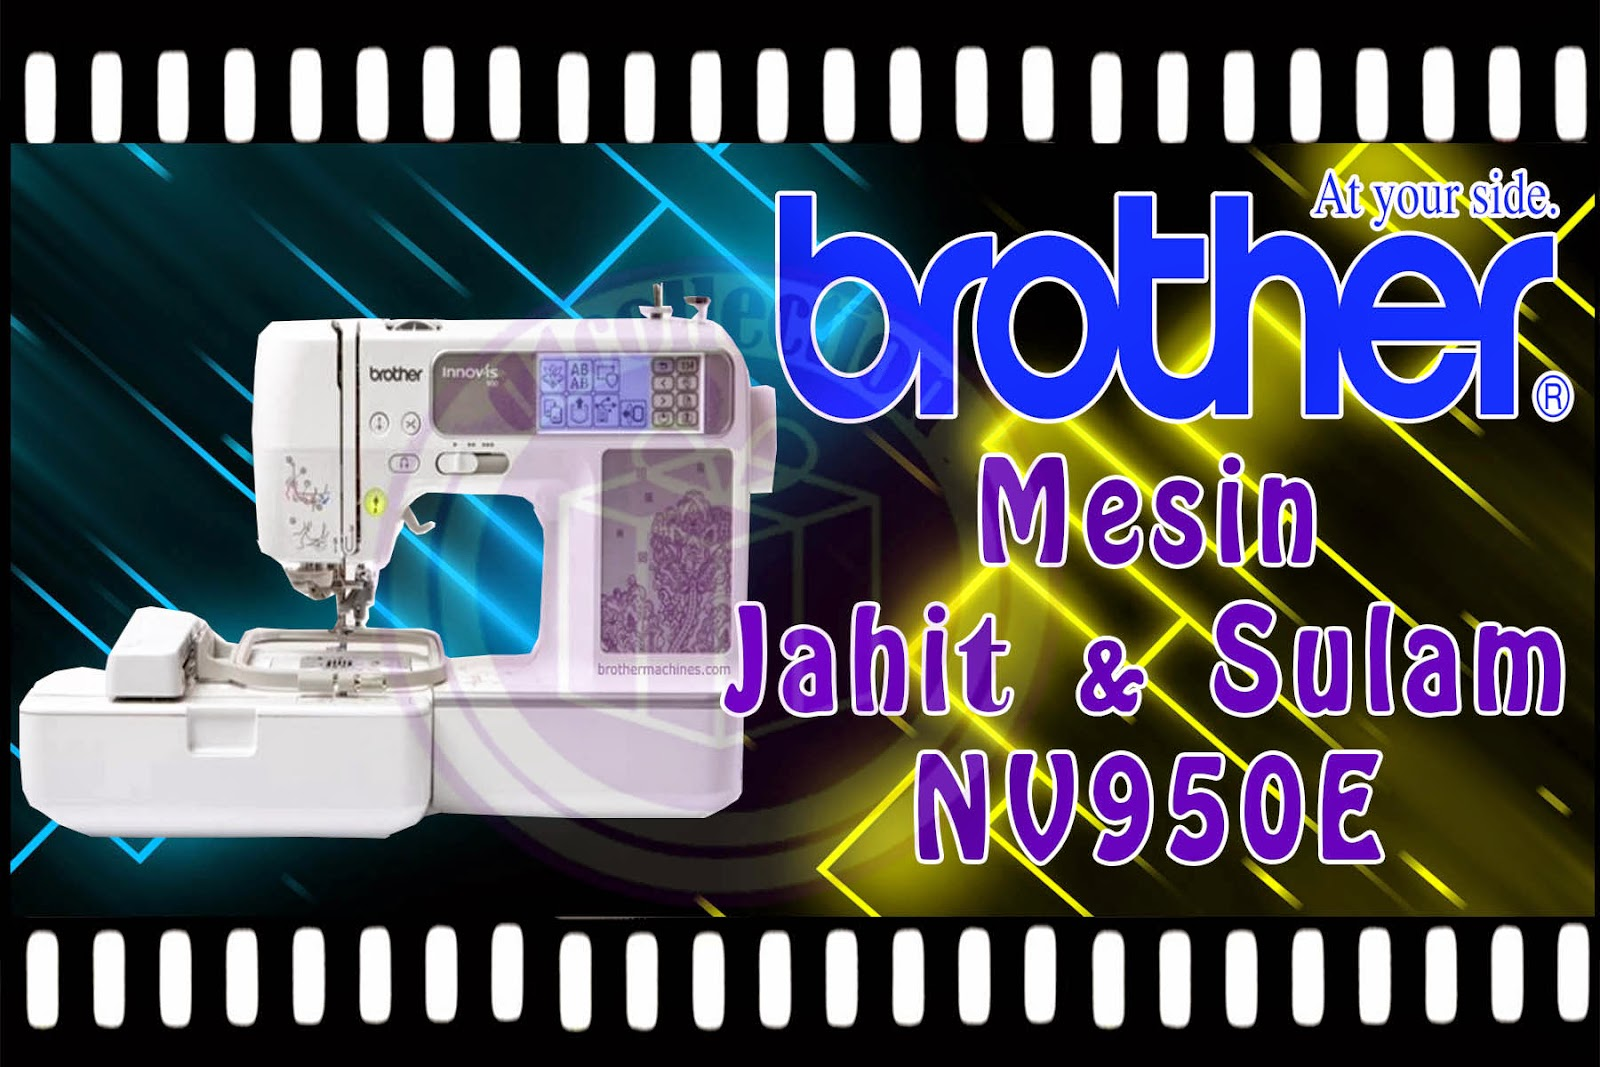 http://d1embroidery.blogspot.com/search/label/Mesin%20Jahit%20%26%20Sulam%20NV950E